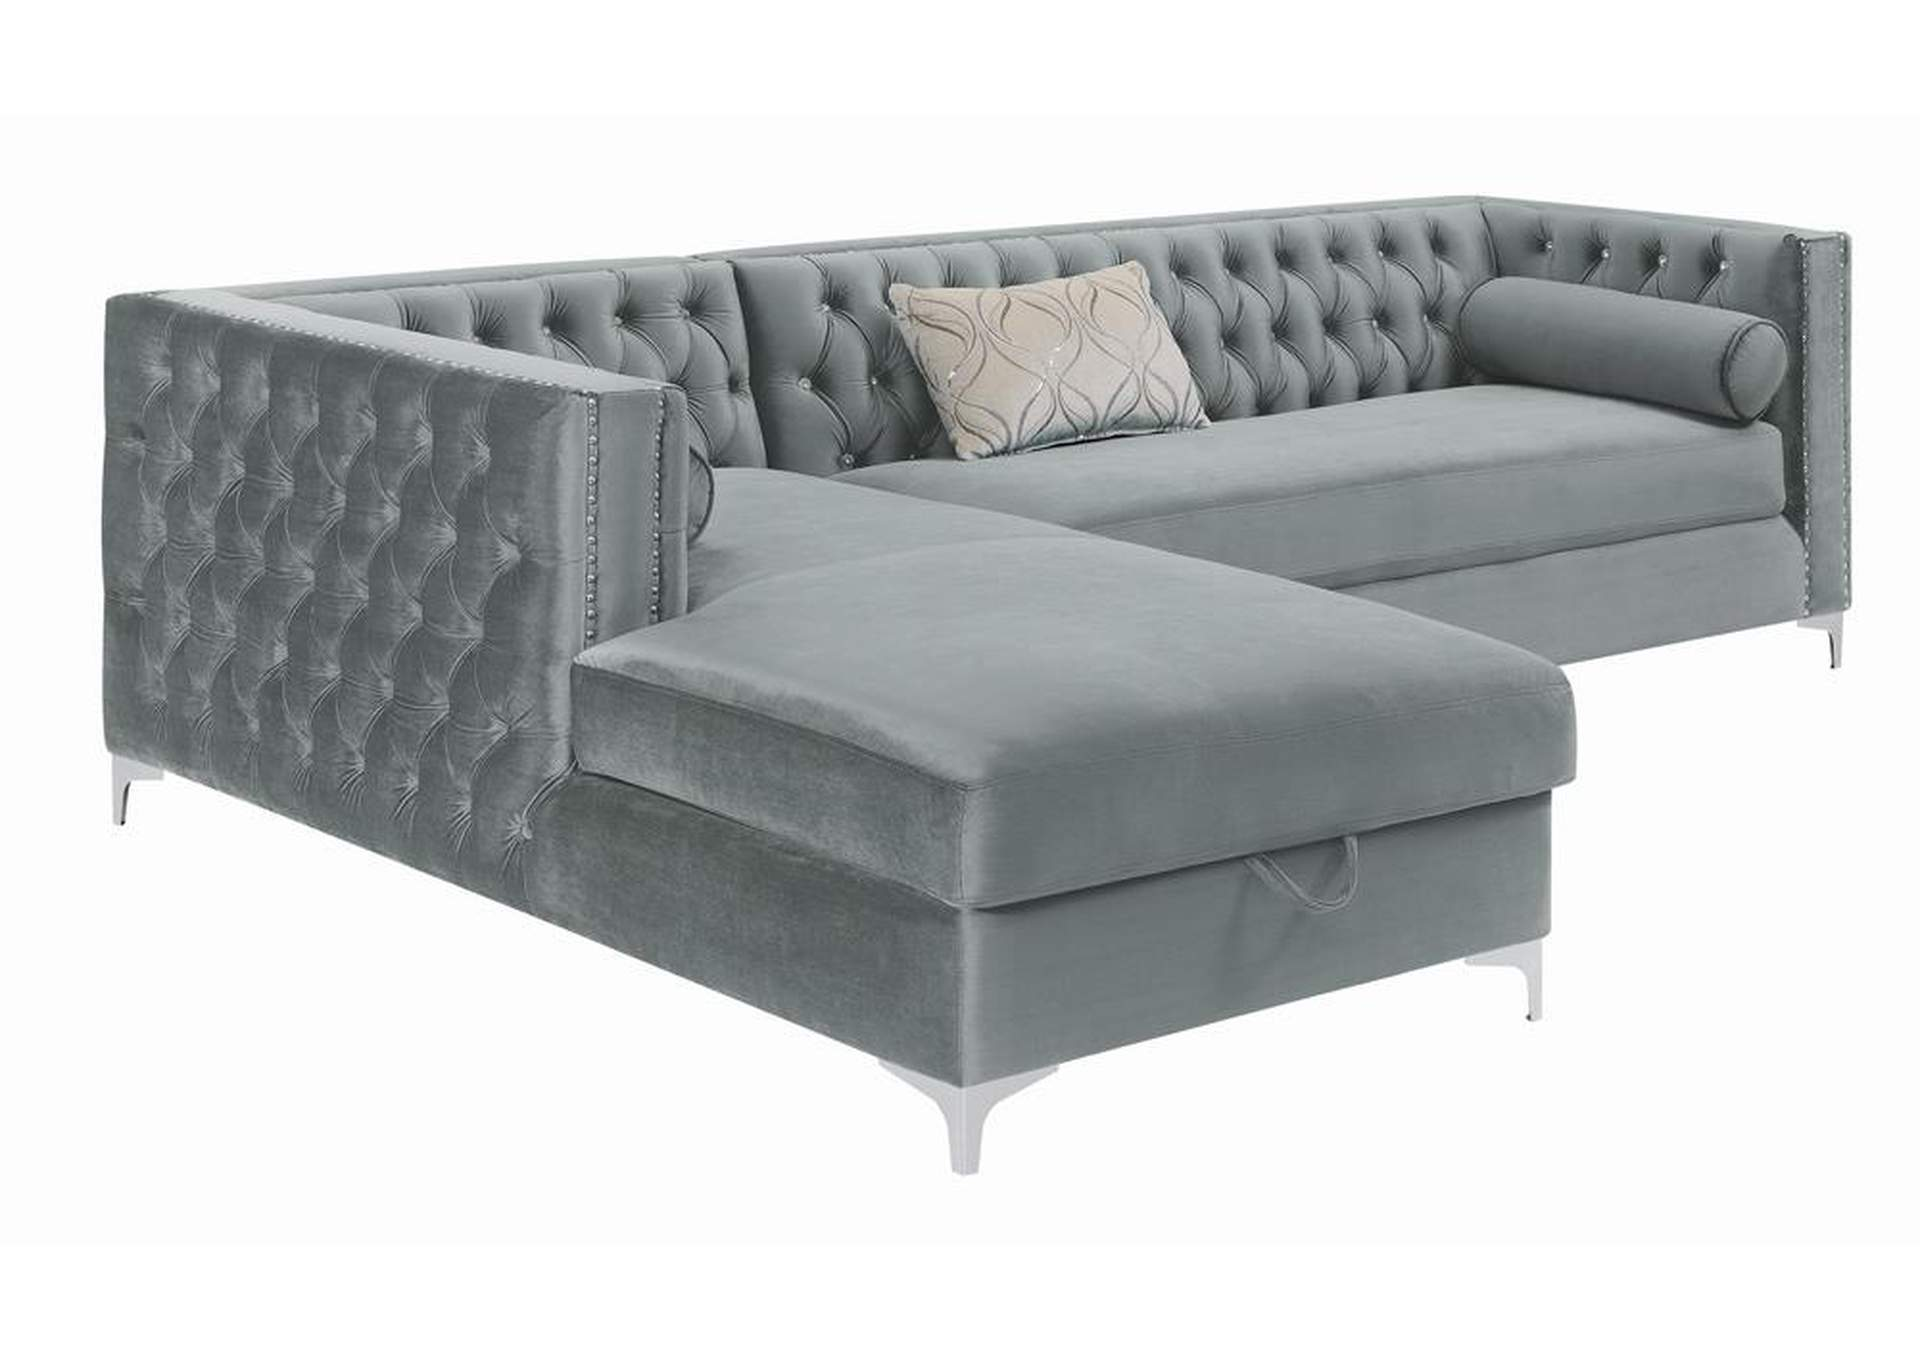 Bellaire Silver/Chrome Sectional,Coaster Furniture